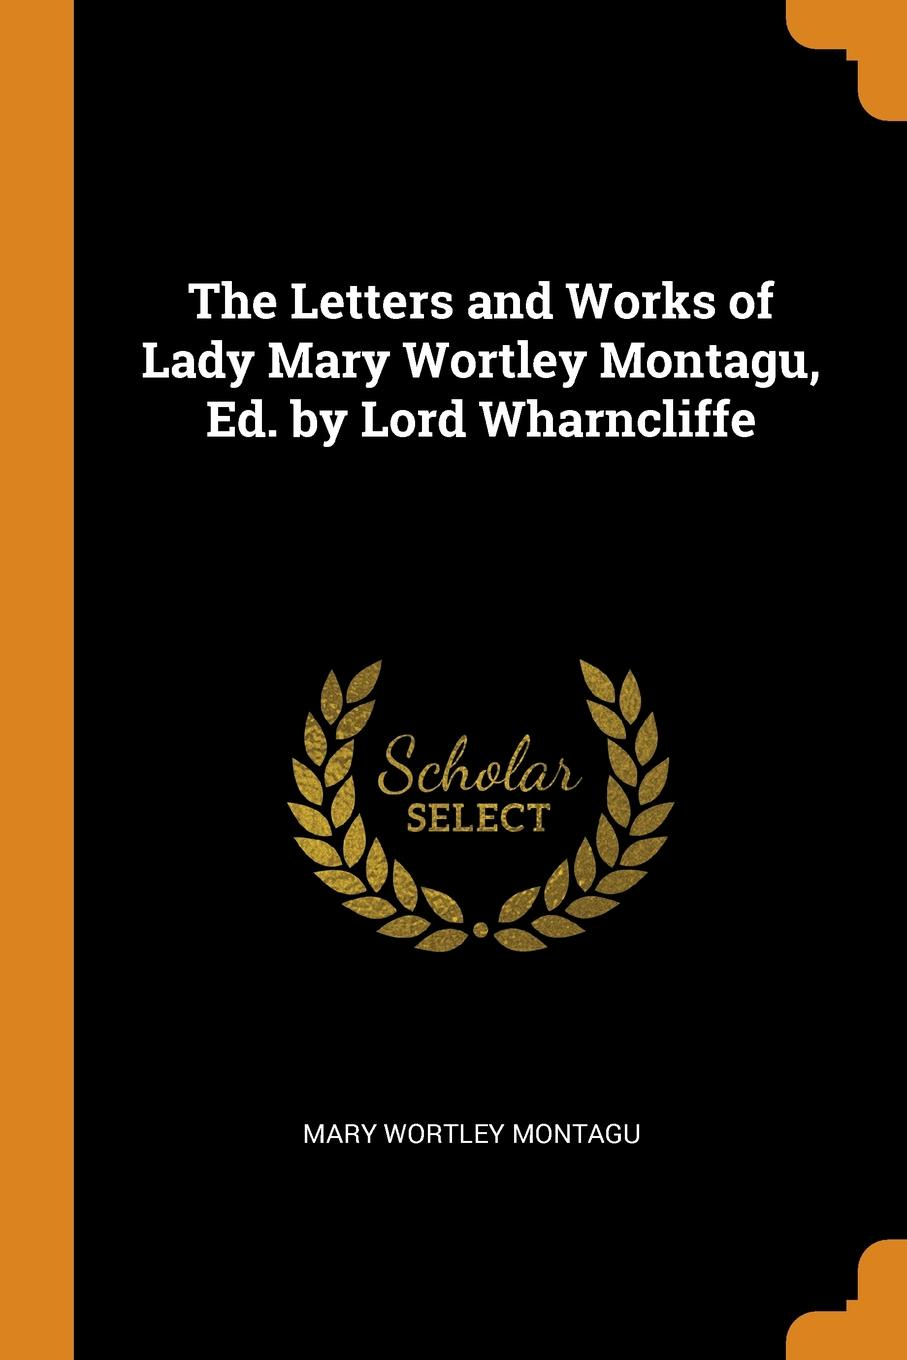 Mary Wortley Montagu The Letters and Works of Lady Mary Wortley Montagu, Ed. by Lord Wharncliffe